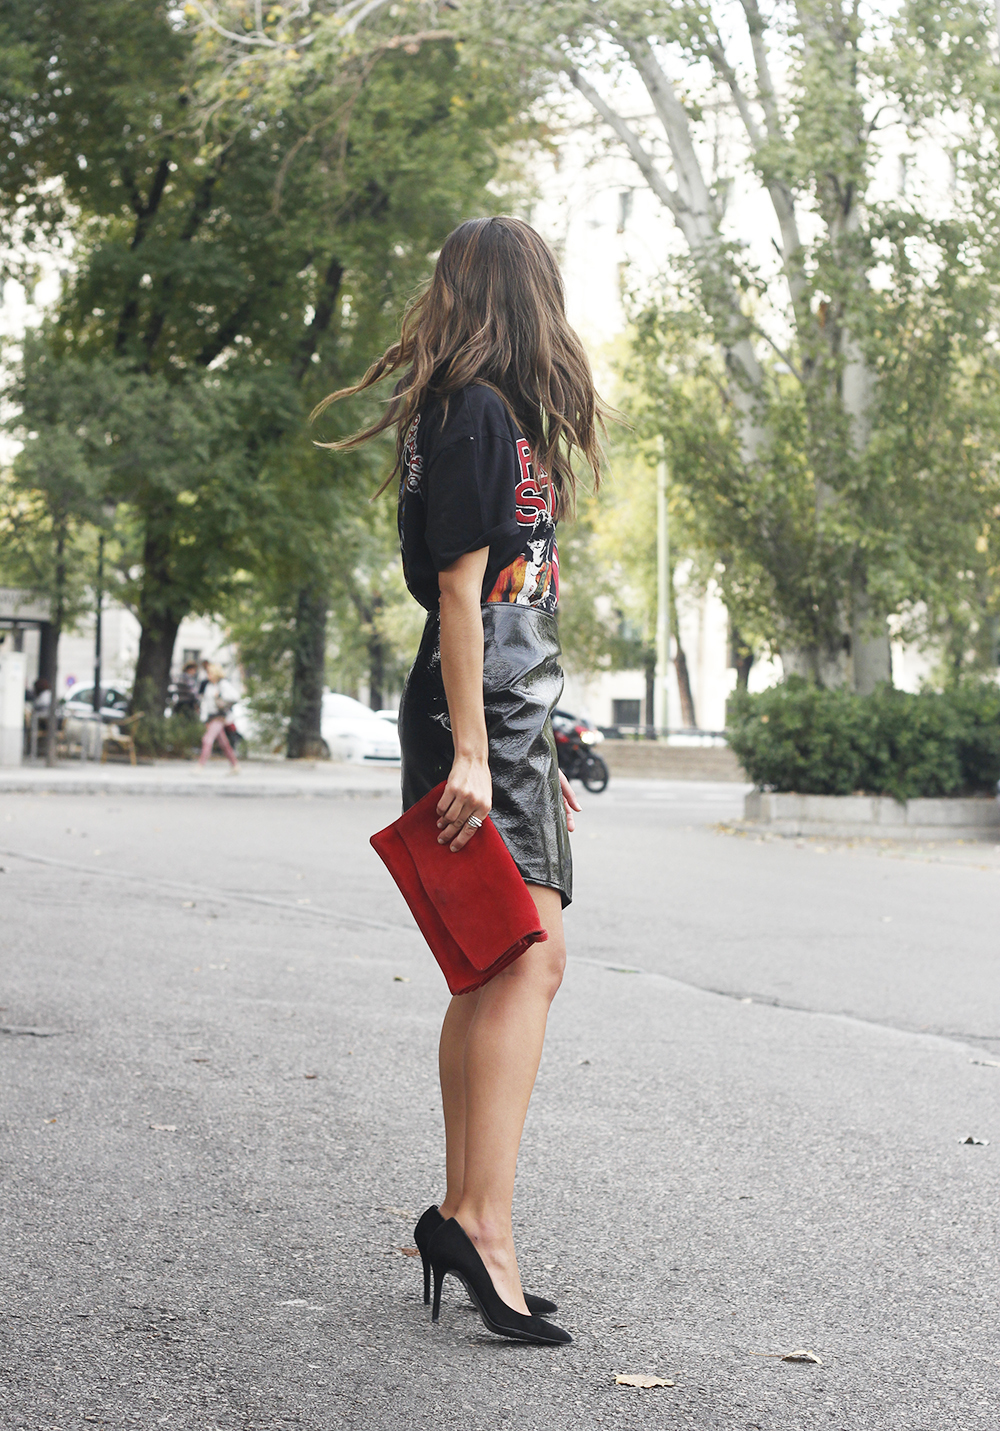 patent leather skirt t-shirt necklace heels leather jacket outfit style fashion06